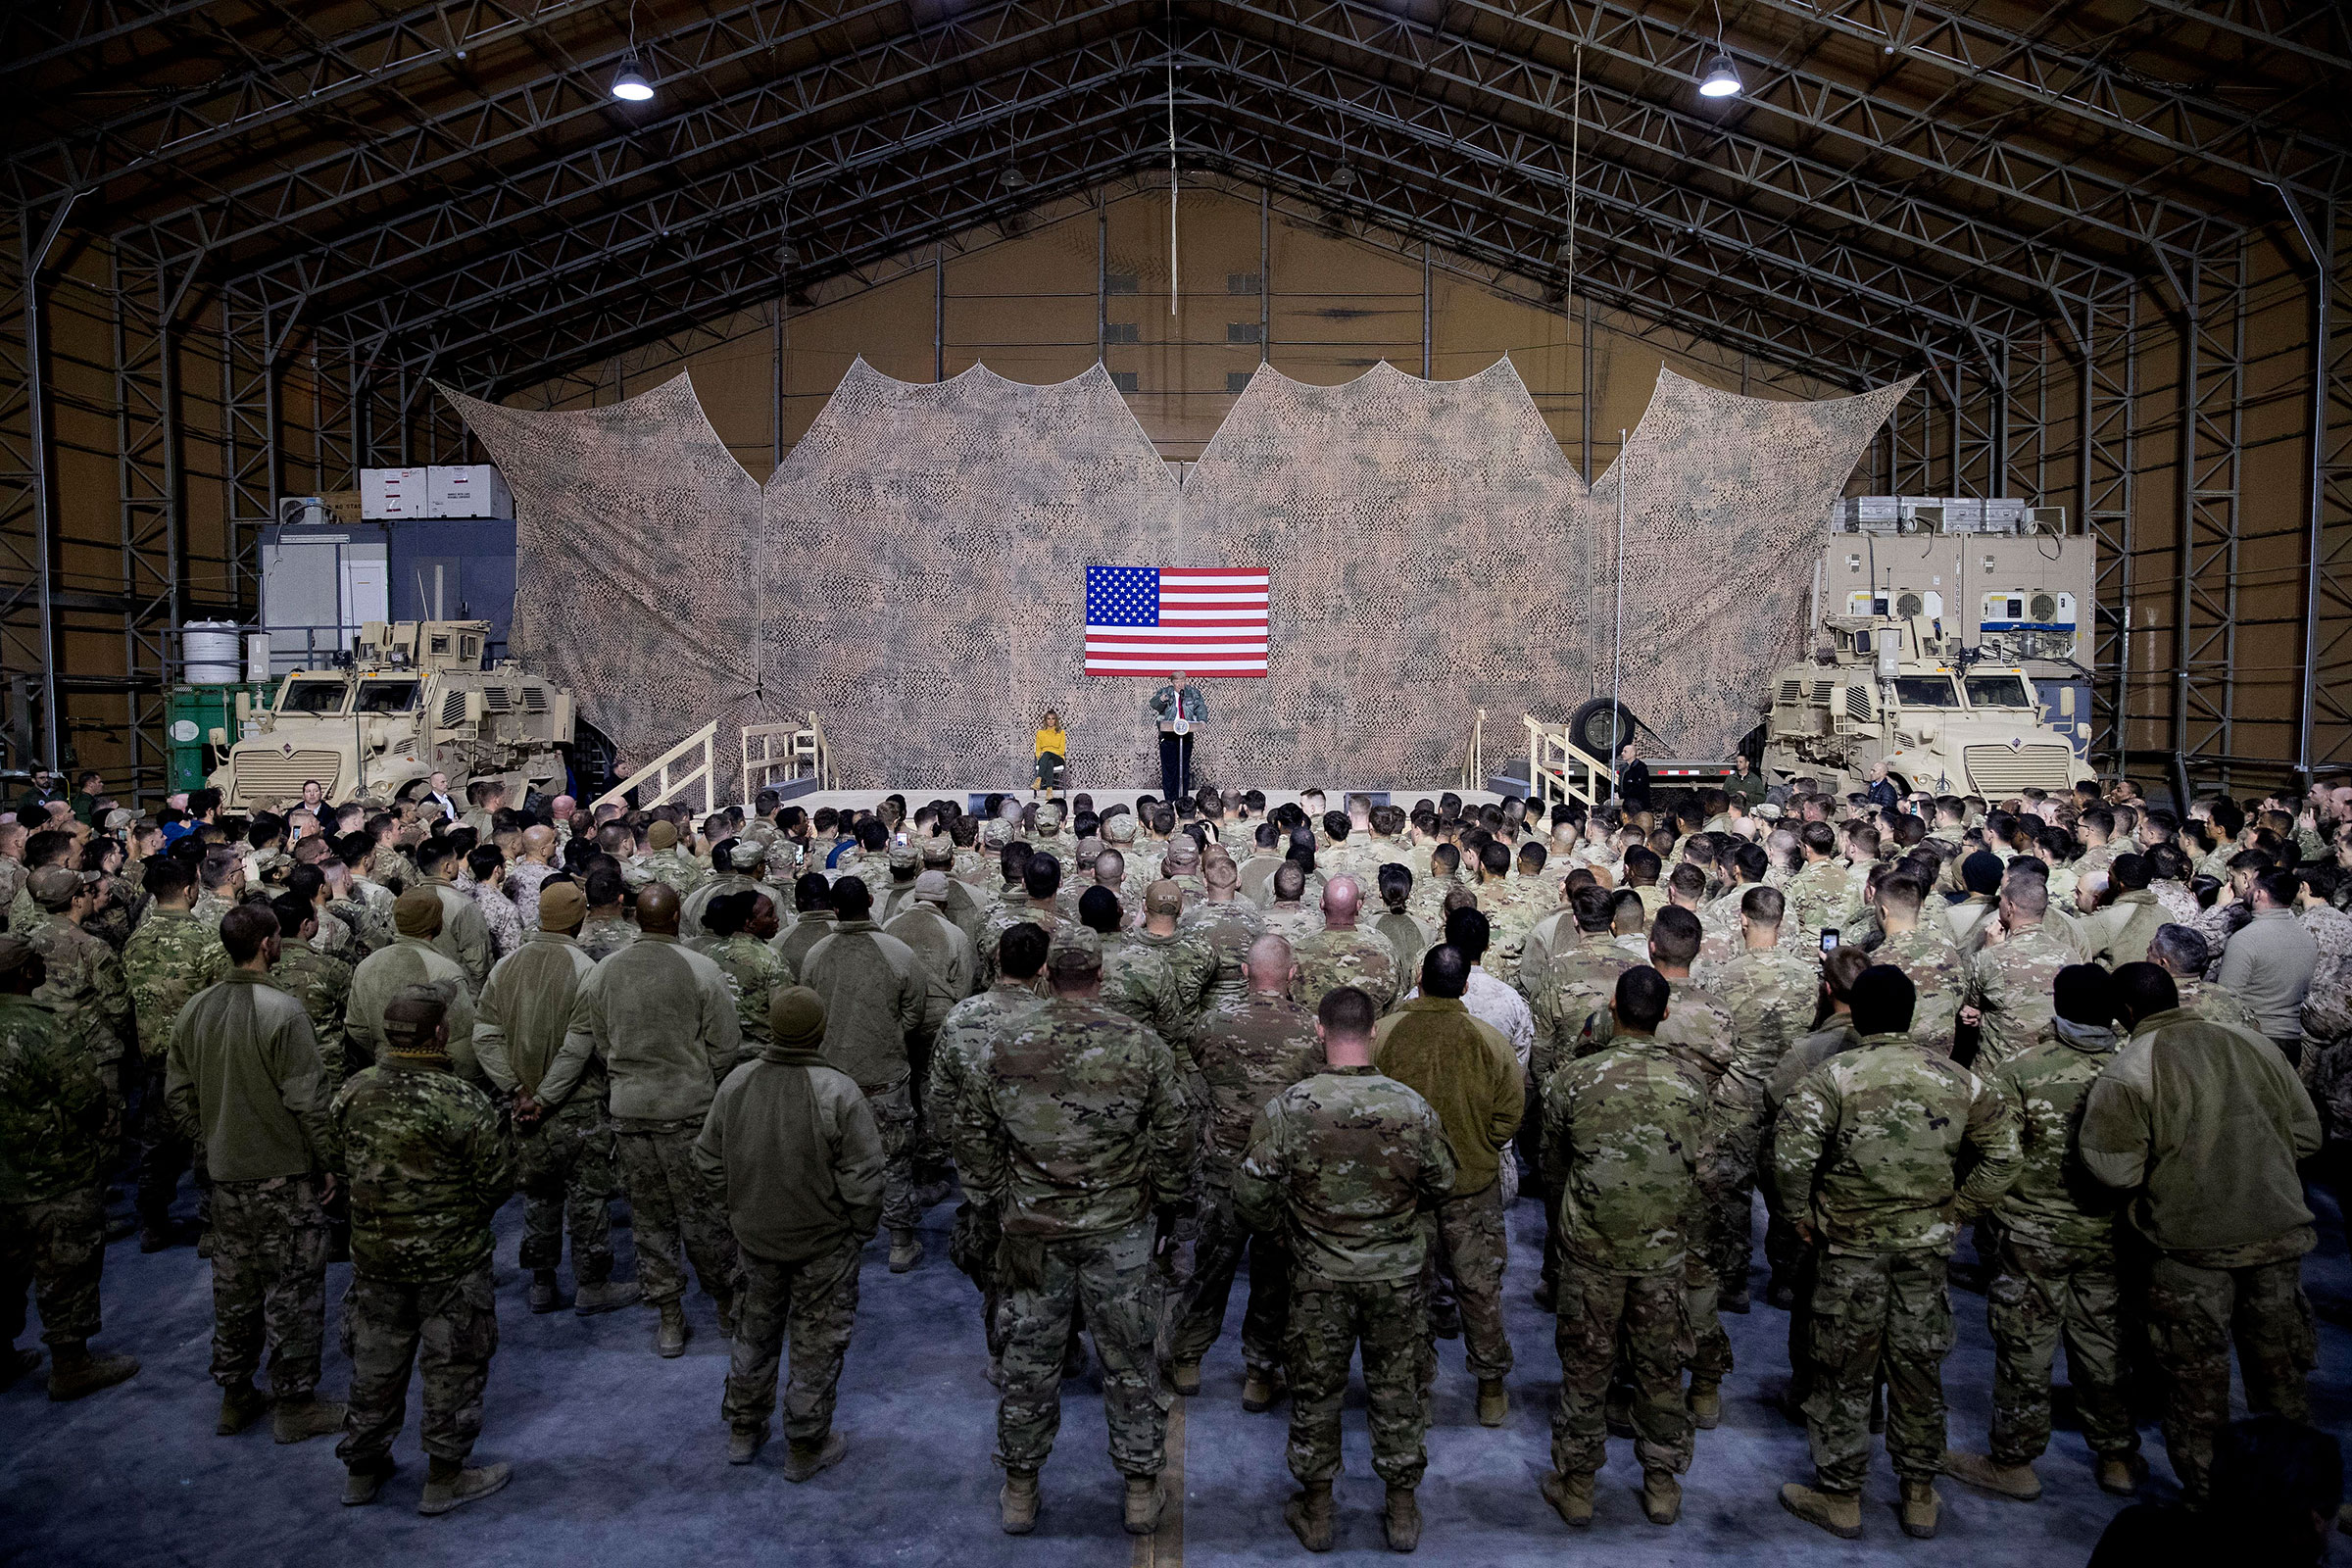 President Trump speaks at a rally in a hangar at Al Asad Air Base, Iraq, on Dec. 26, 2018